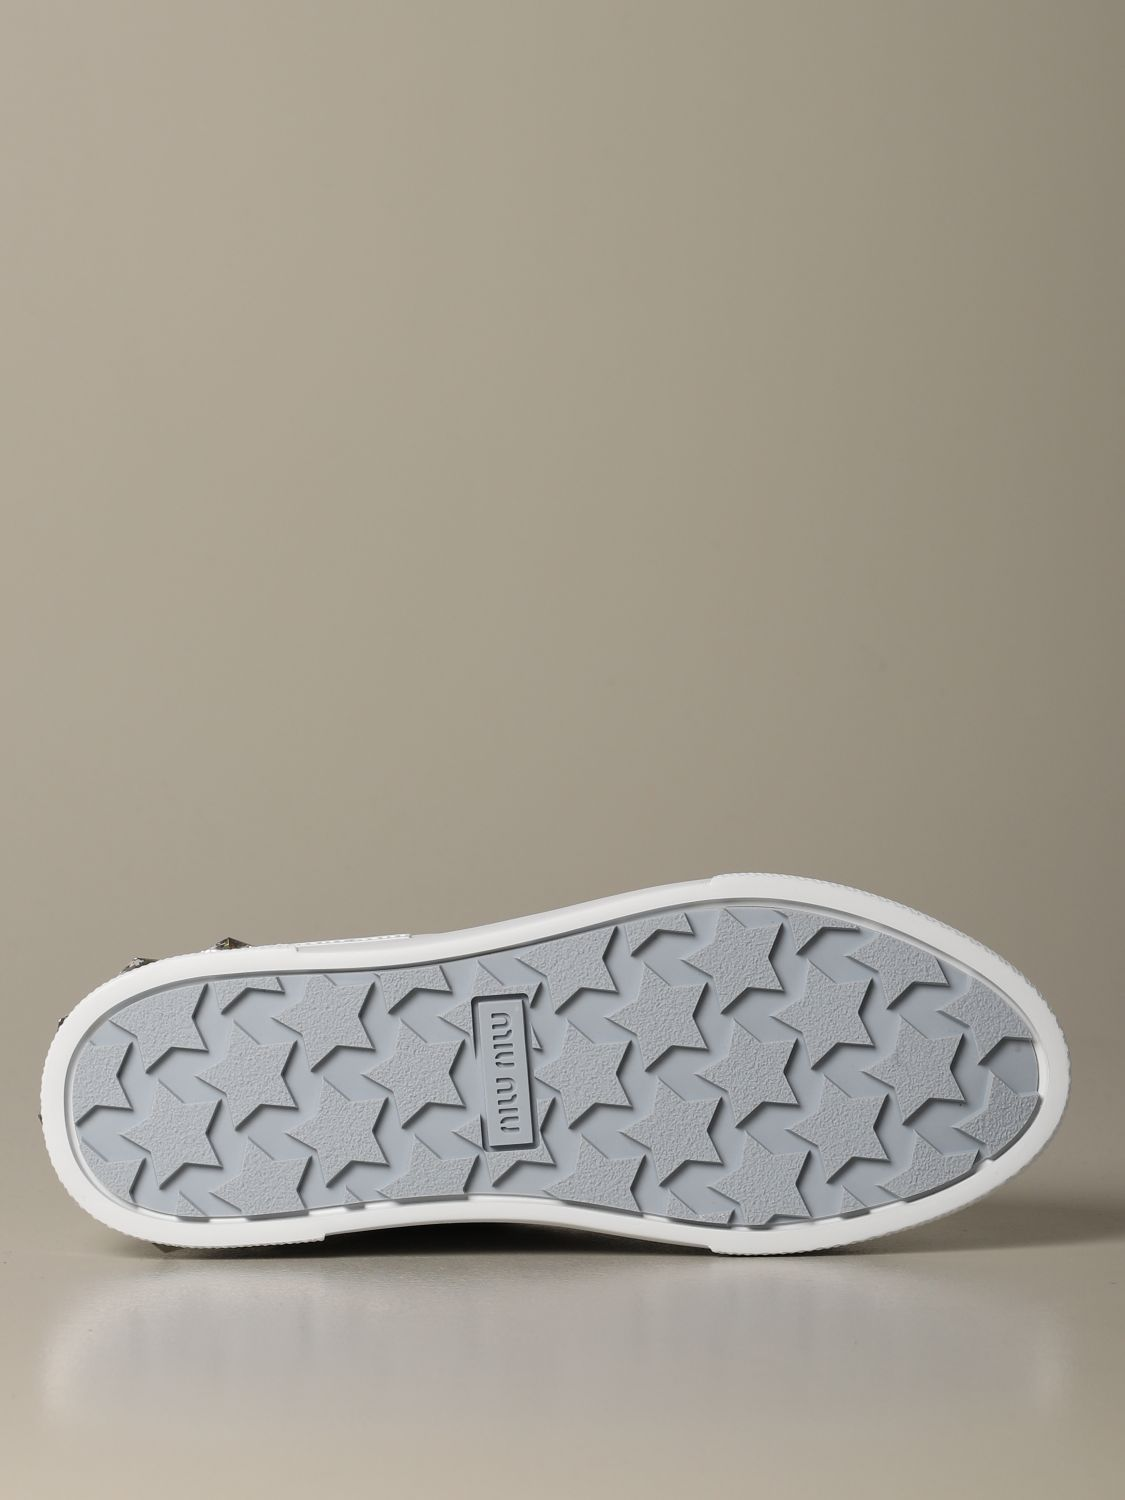 Sneakers pelle suola strass bianco 4